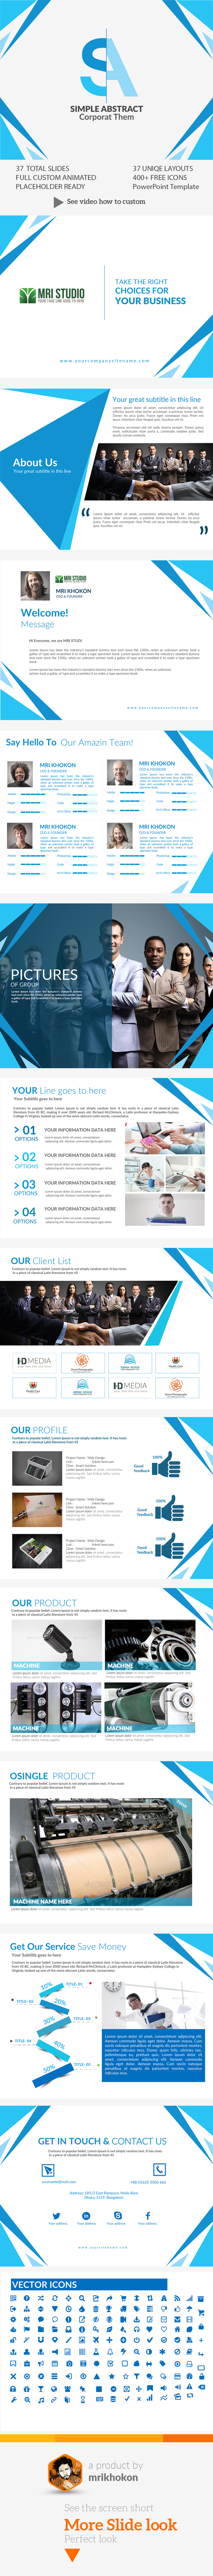 Simple abstract power point presentation template by mrikhokon simple abstract power point presentation template abstract powerpoint templates toneelgroepblik Choice Image